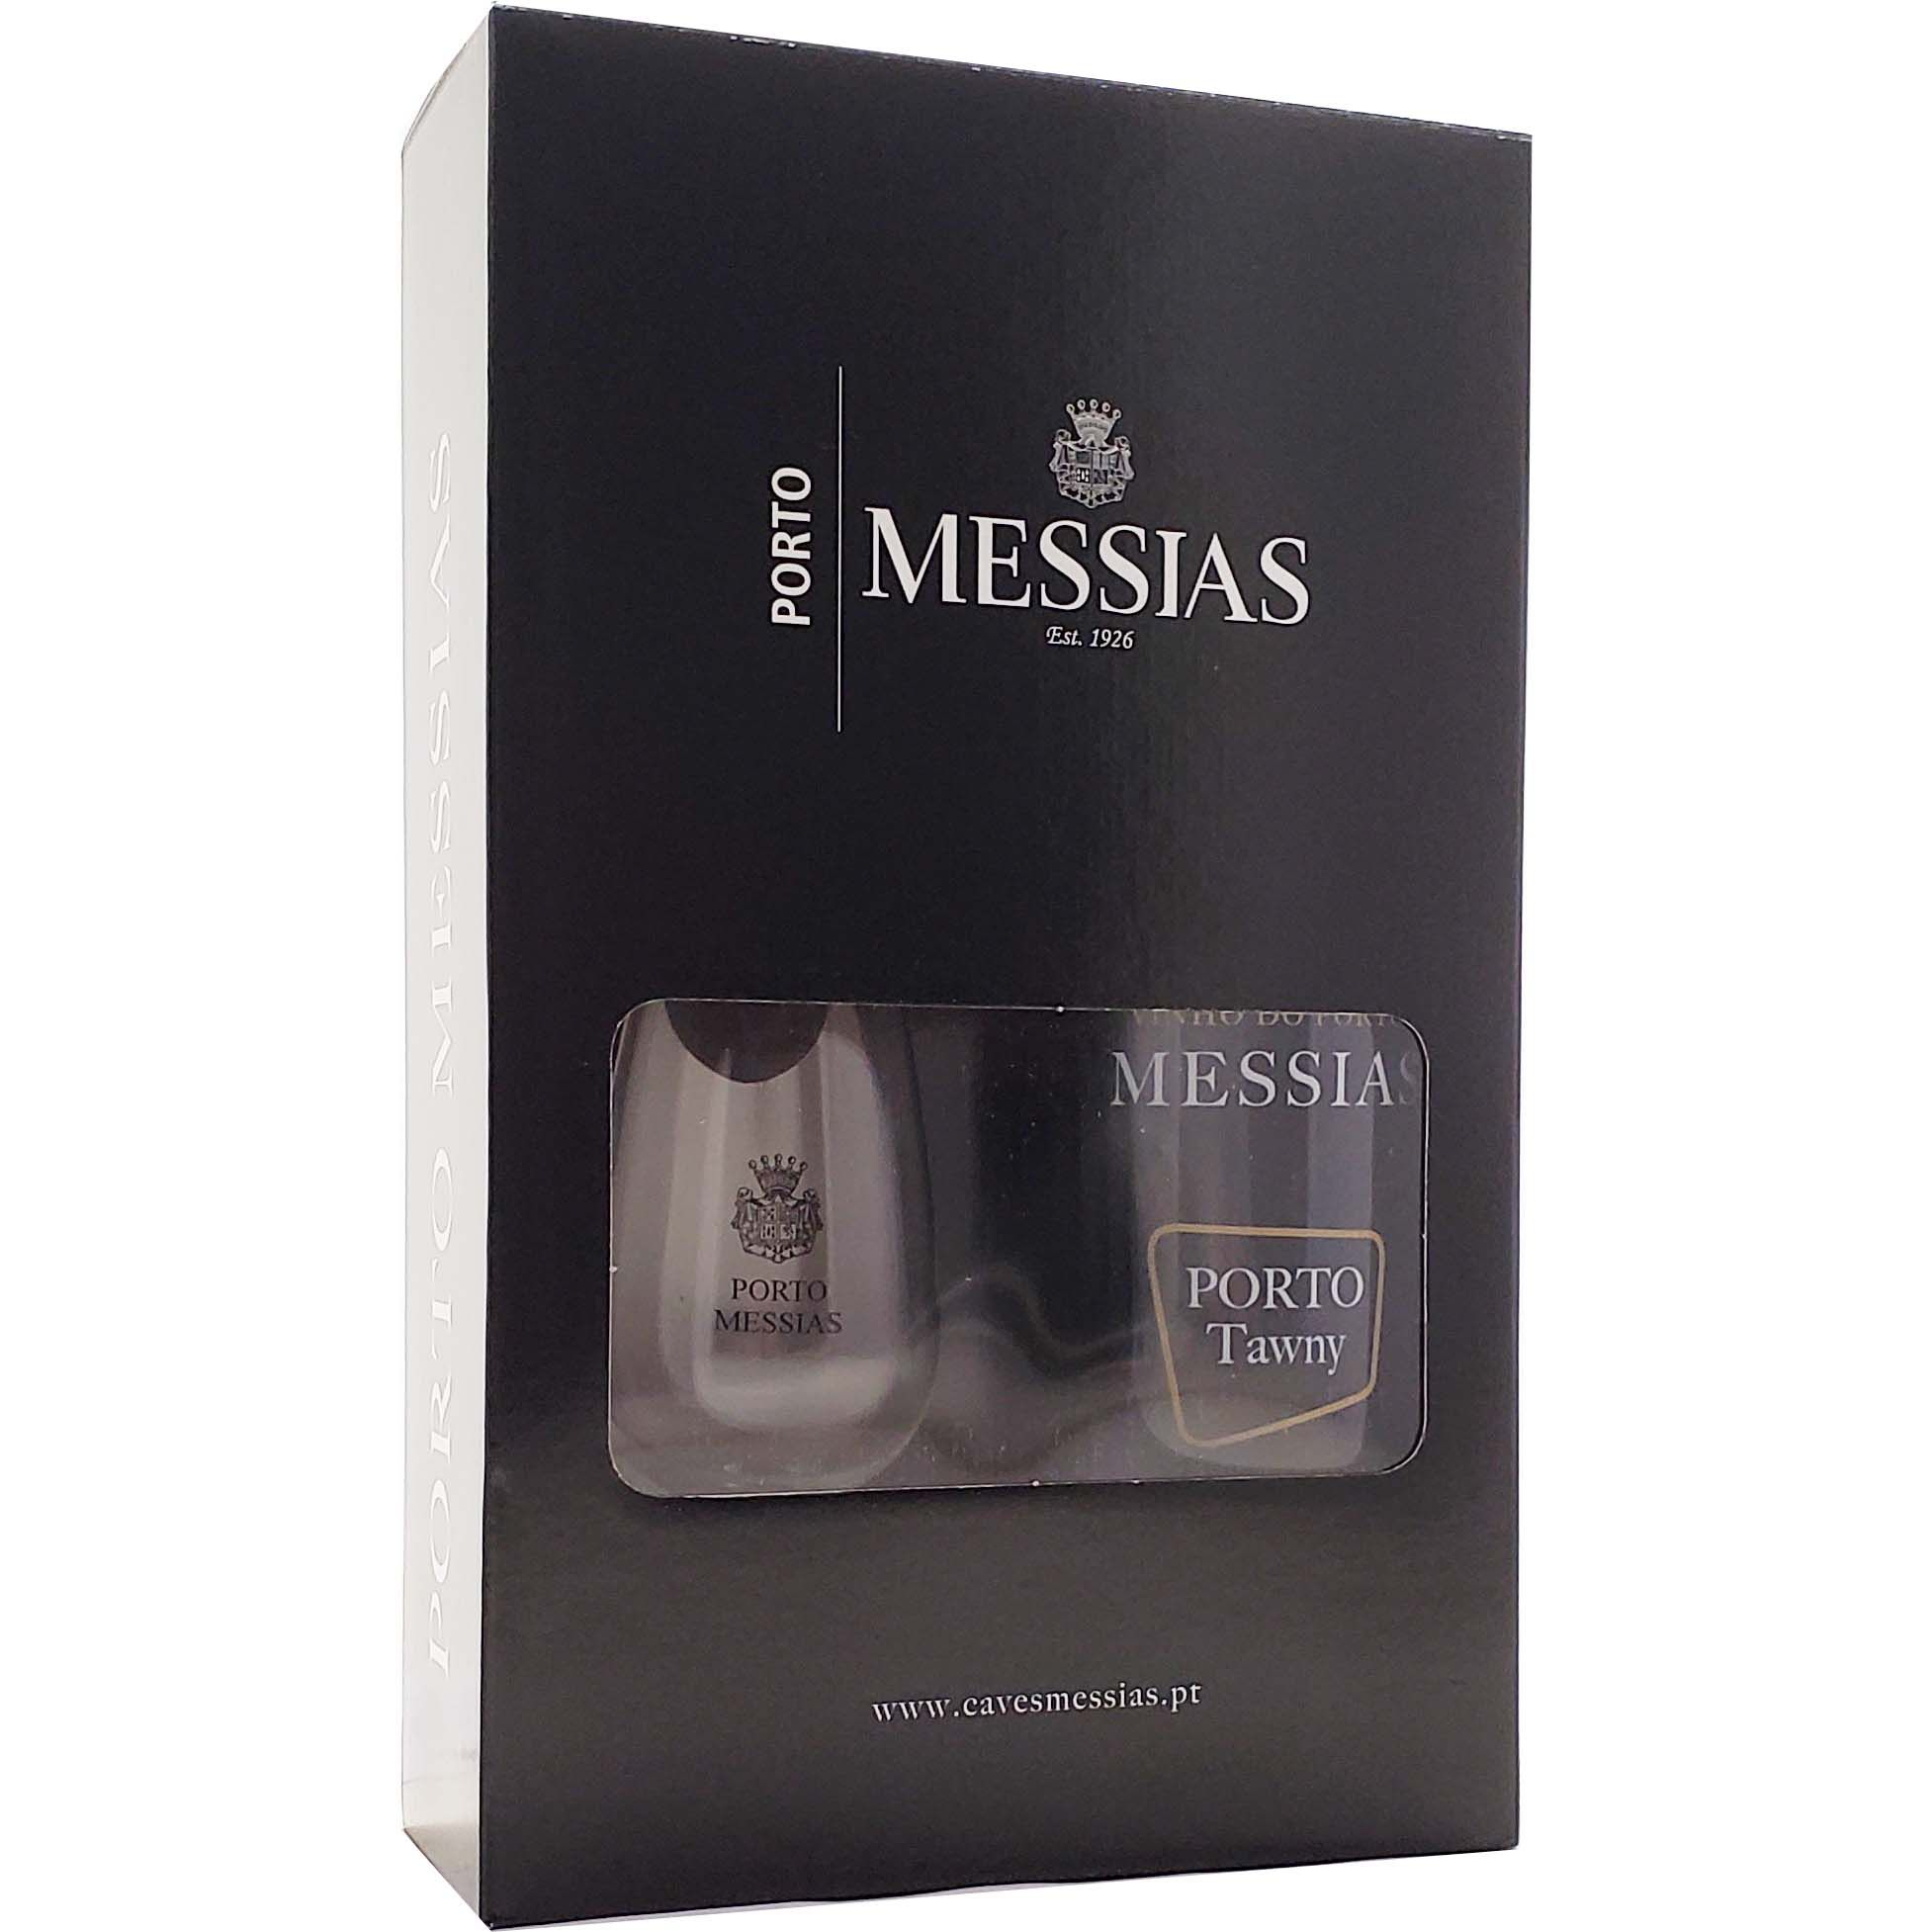 Kit Vinho do Porto Messias Tawny  750ml +  1 Taça